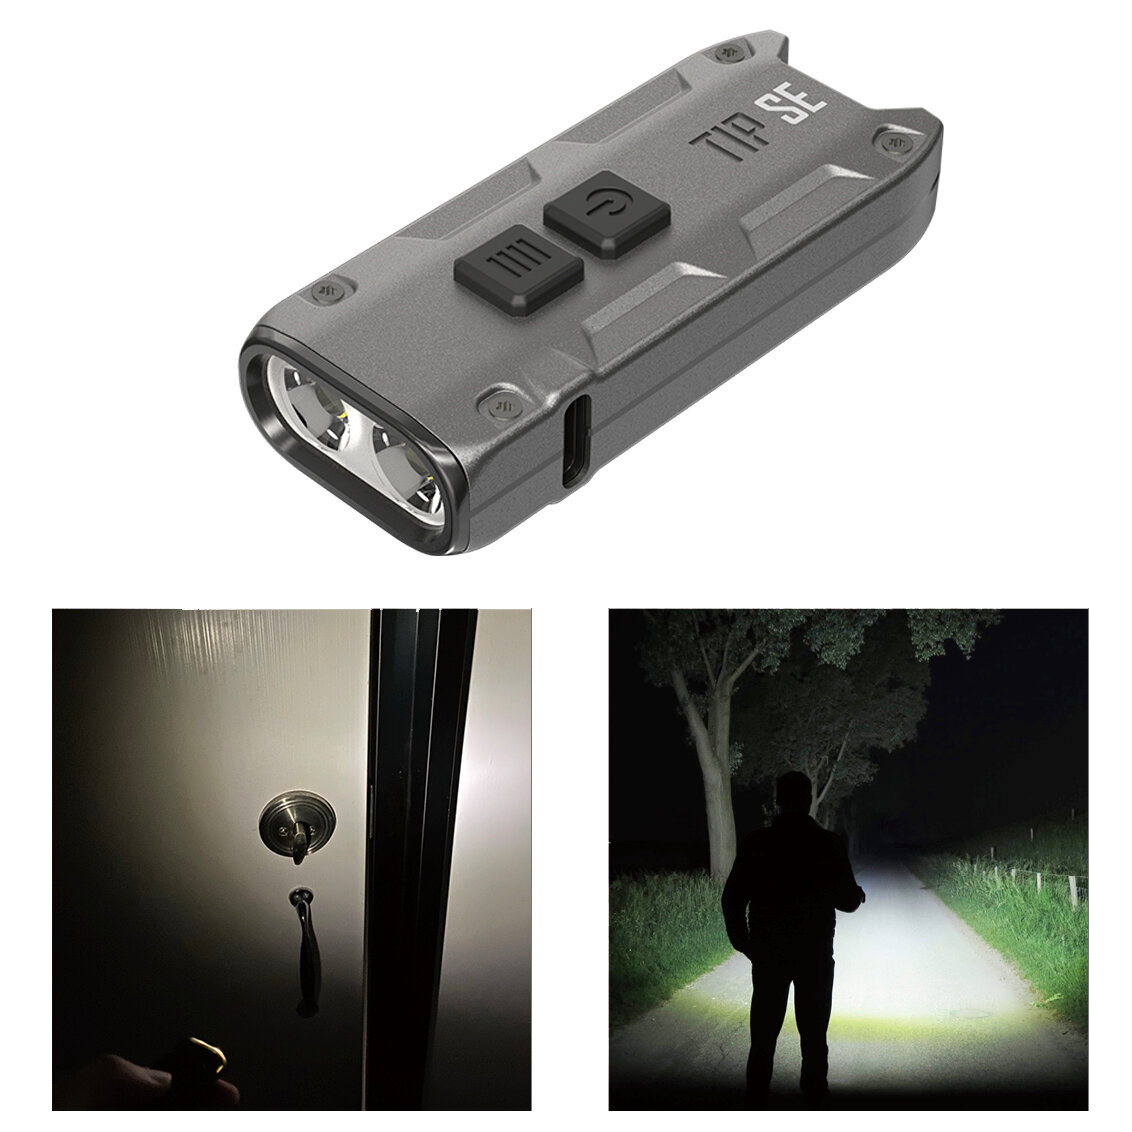 Banggood coupon: NITECORE TIP SE 700LM OSRAM P8 Dual Light LED Keychain Flashlight Type-C Rechargeable QC Every Day Carry Mini Torch